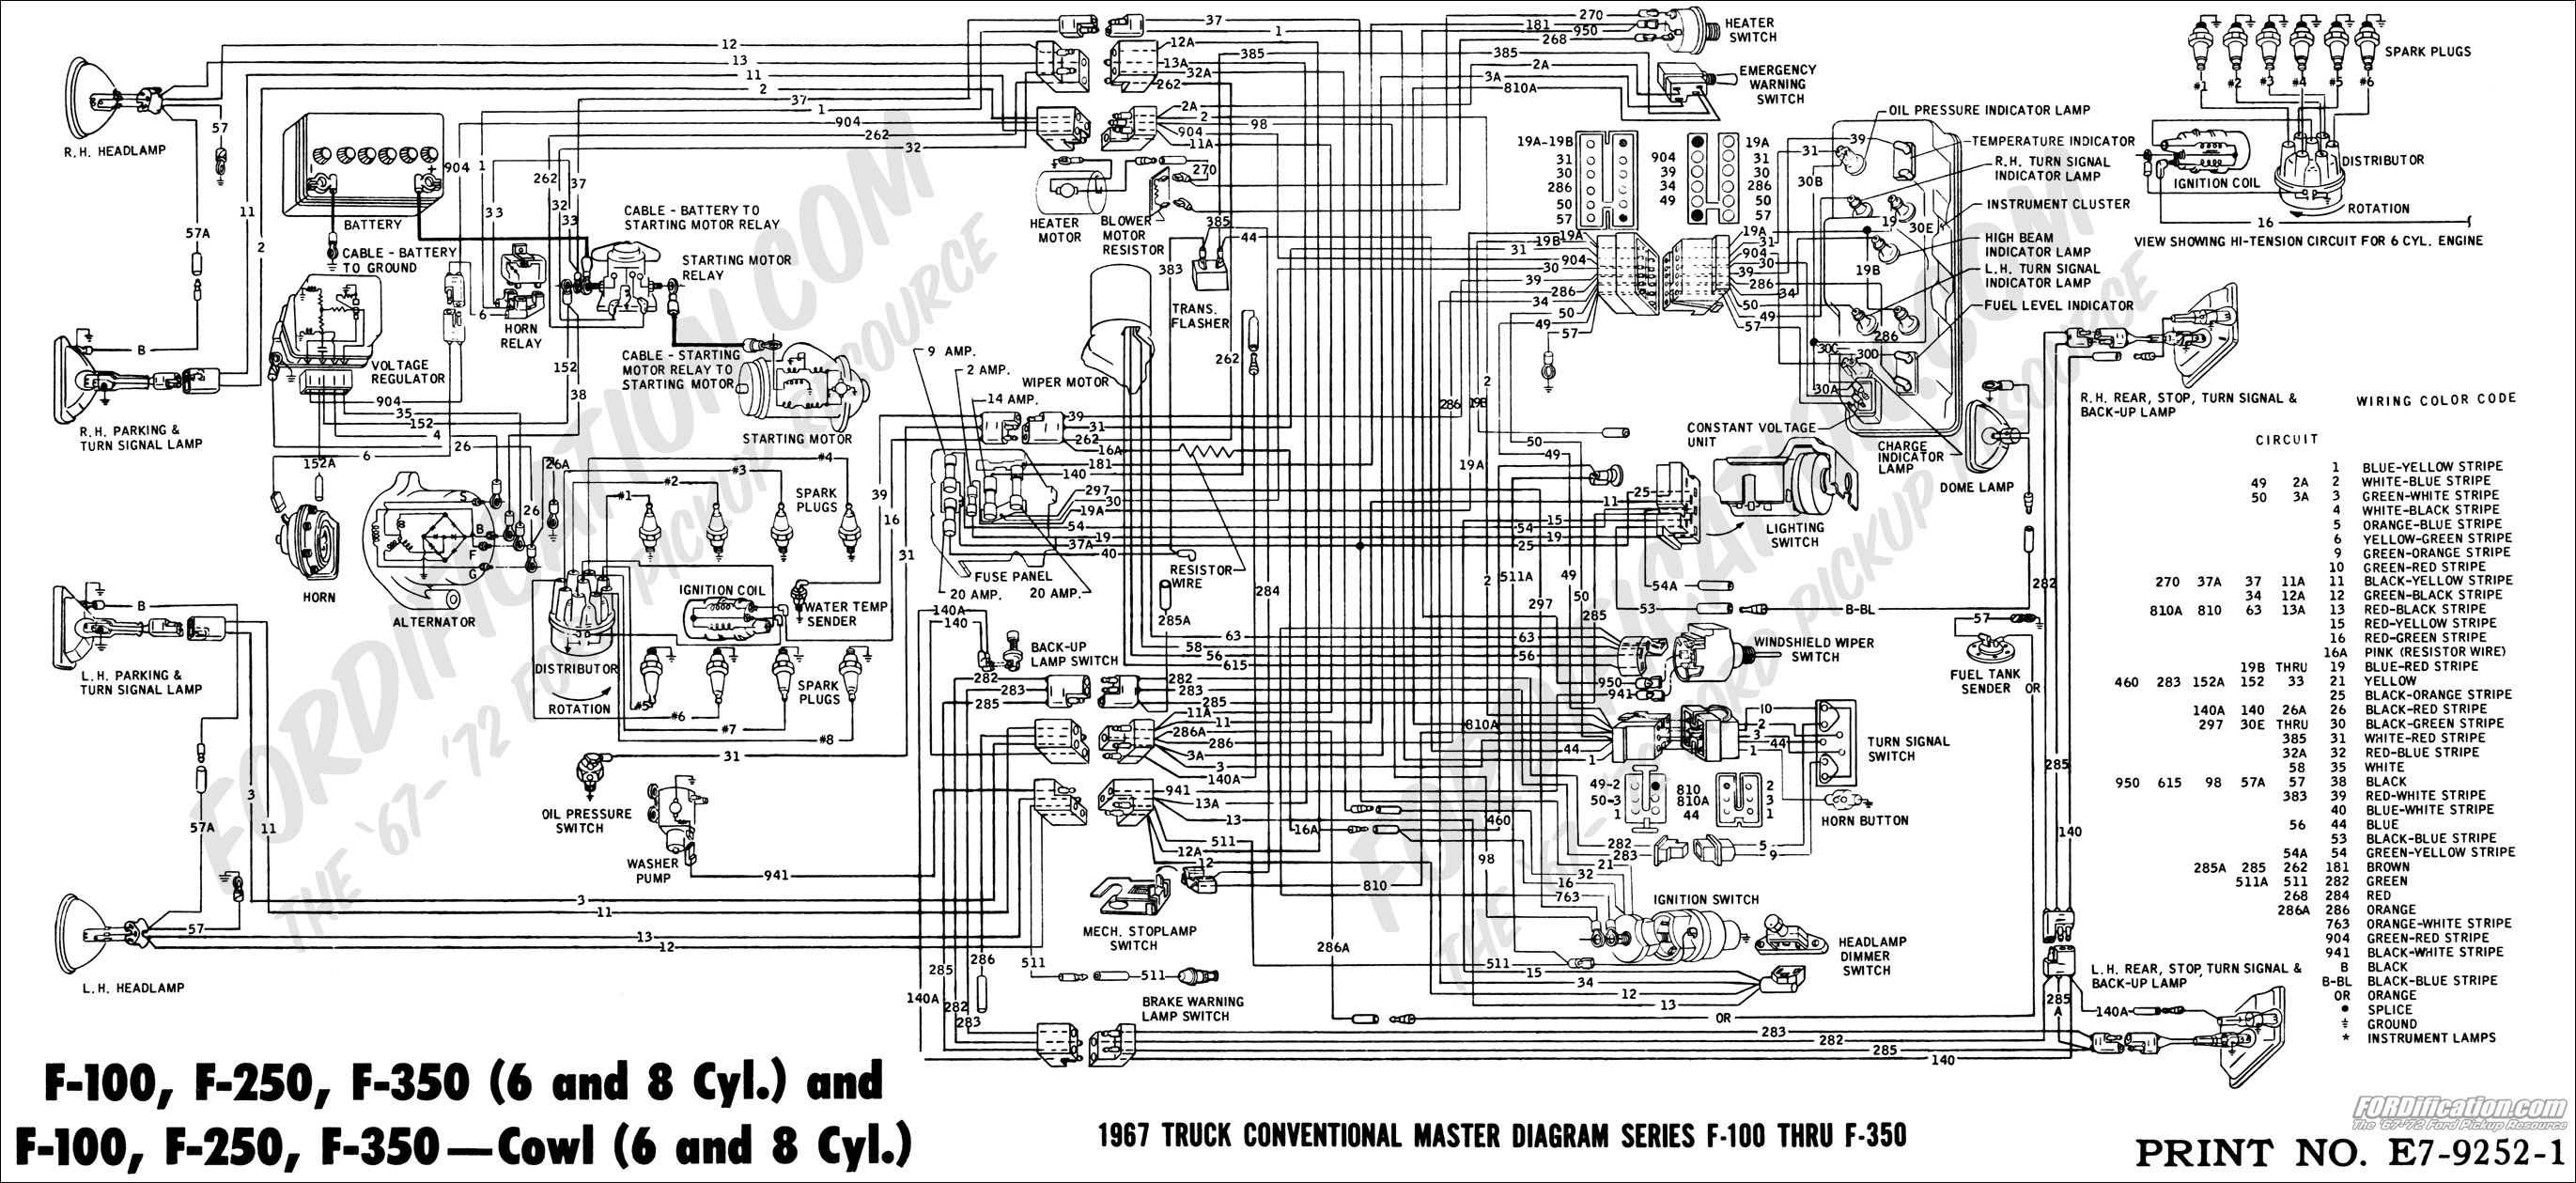 Jeep Cj7 Alternator Wiring Diagram Free Download 1967 Rambler Rebel Ford F 250 Headlight Switch Schematic Rh Arcomics Co